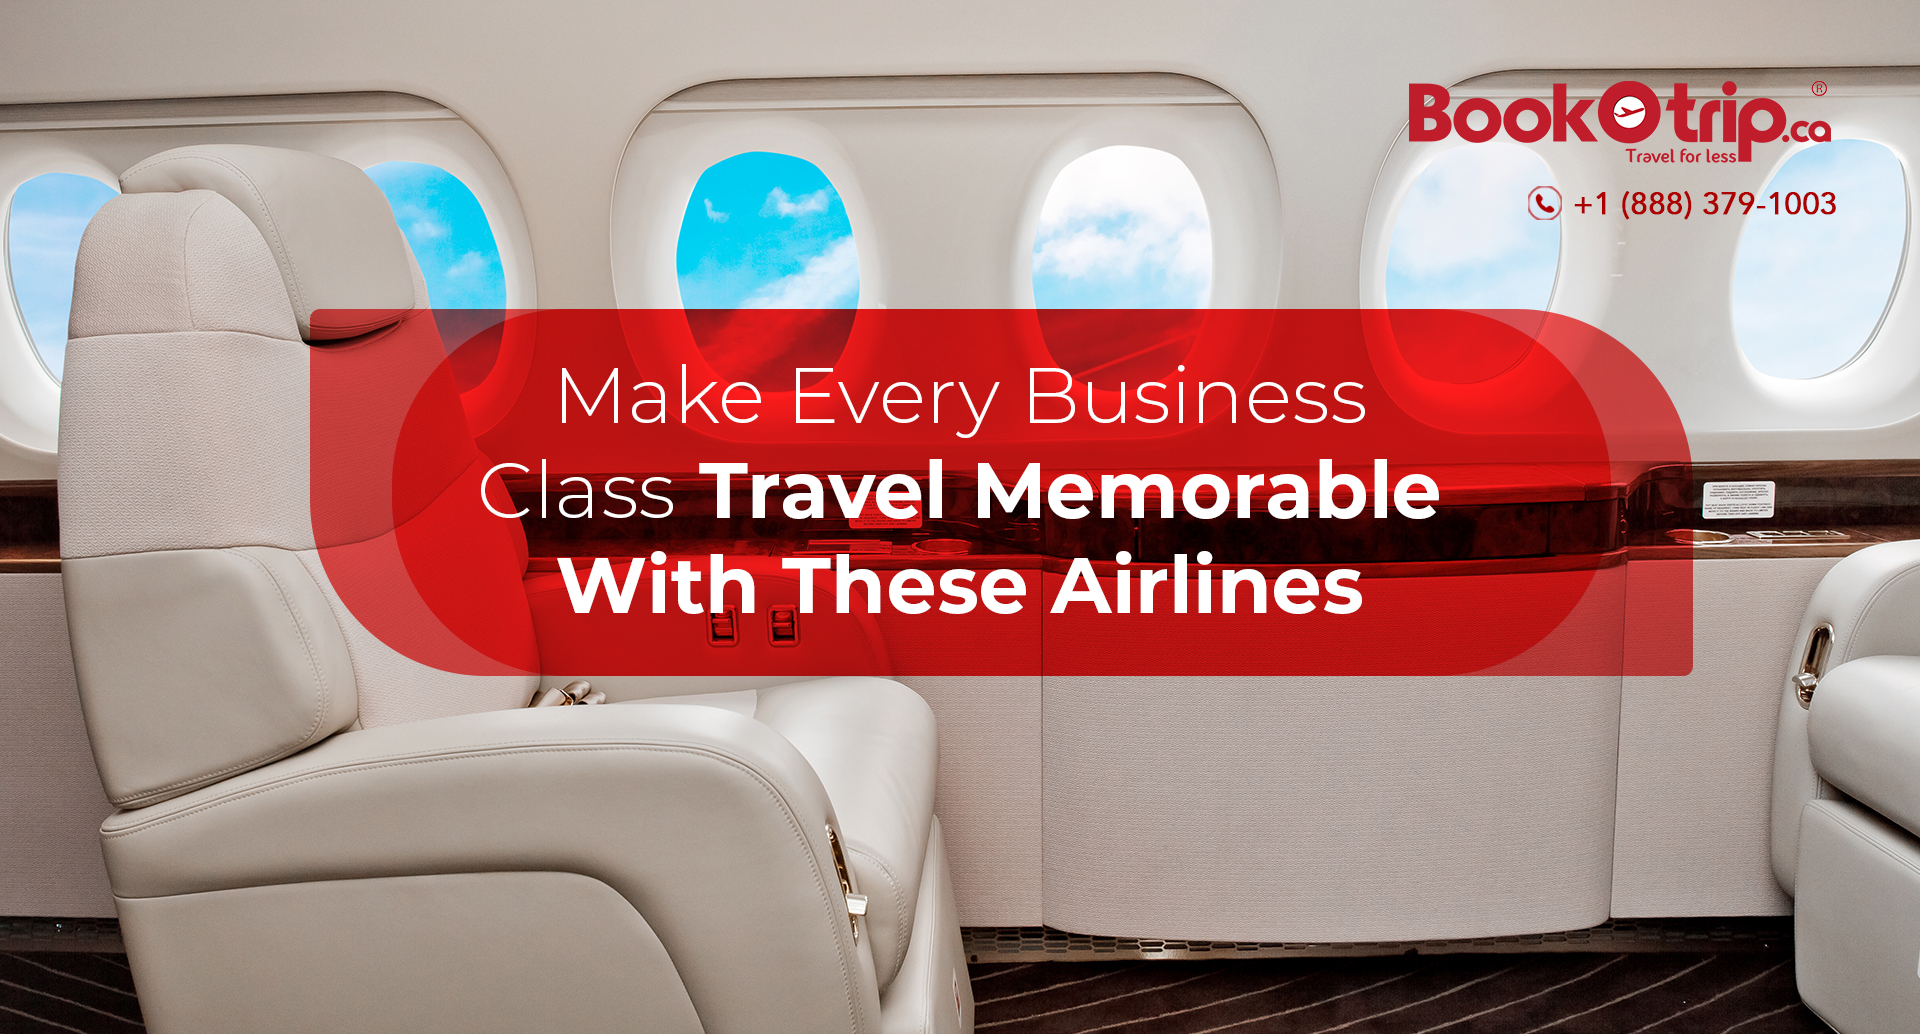 Searching for flight booking sites? Now buy airline tickets online through BookOtrip. For more airline booking offers, visit our website or call us at toll free number +1 (888) 379-1003. We search hundreds of airlines to find the best prices for you